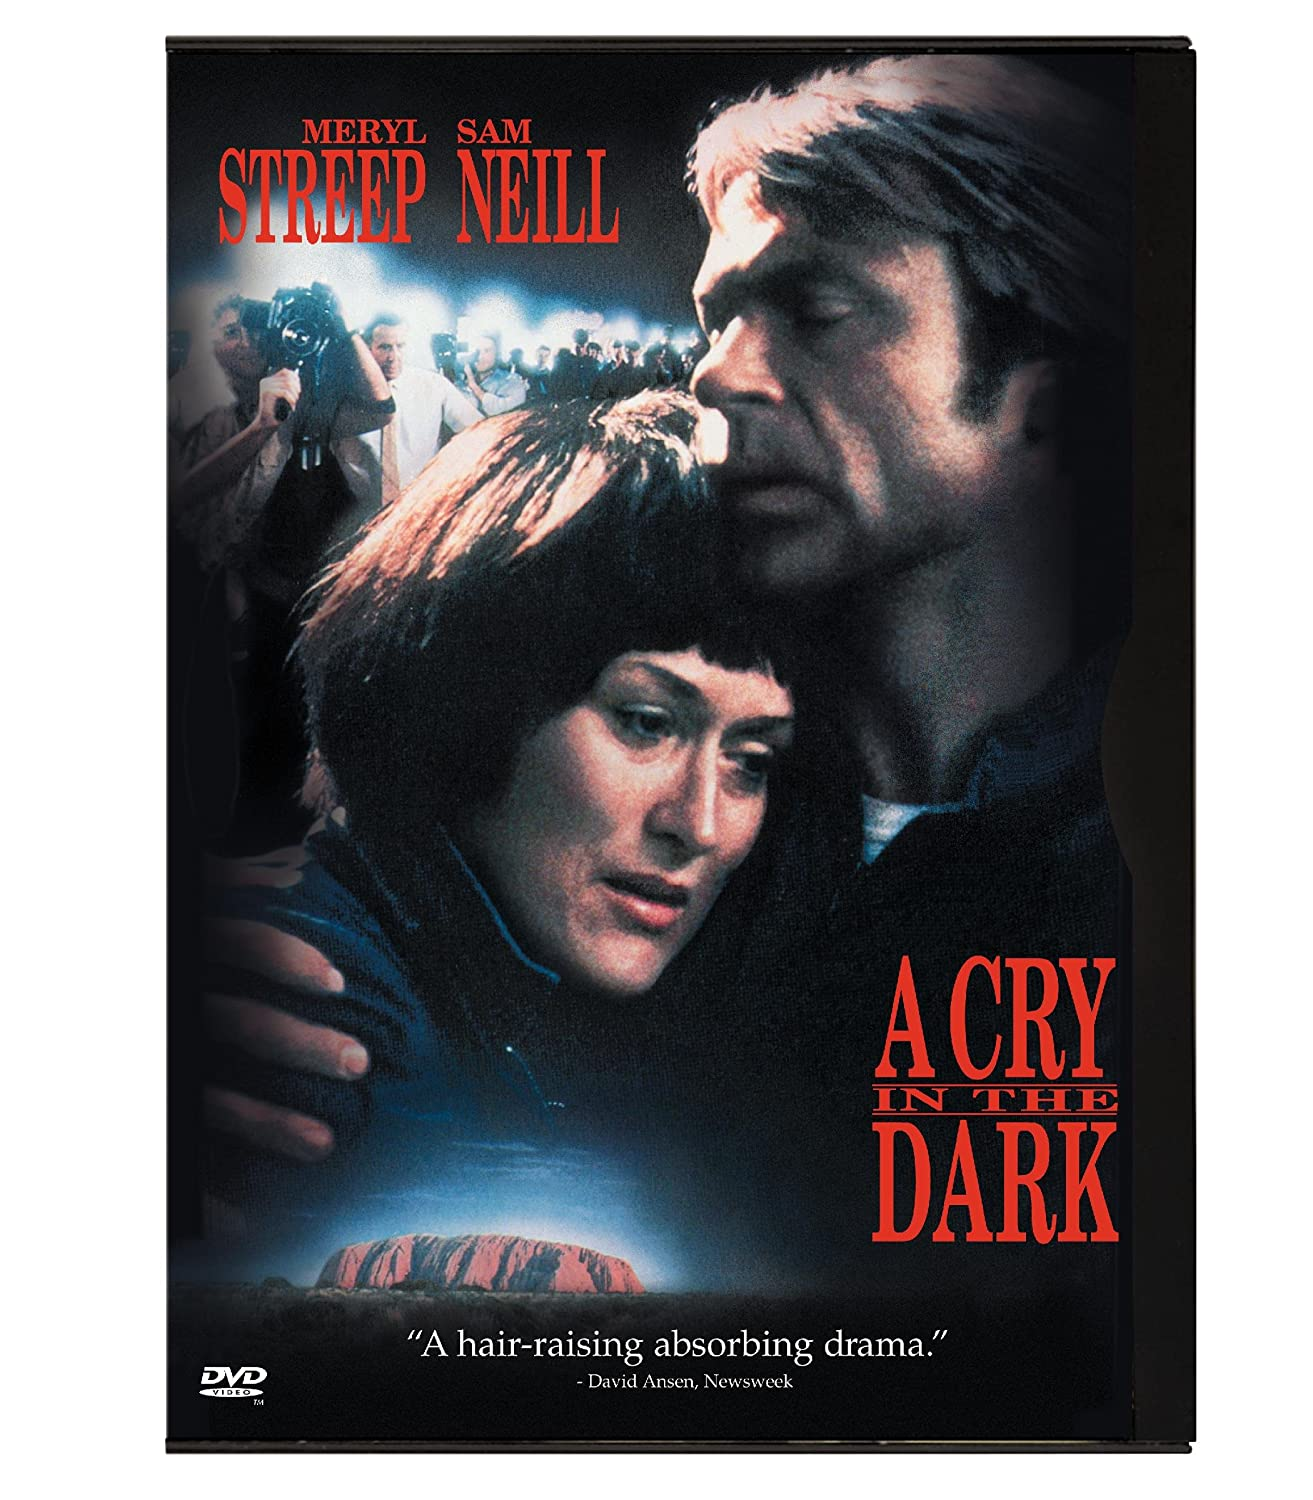 Amazon com: A Cry in the Dark: Meryl Streep, Sam Neill, Dale Reeves